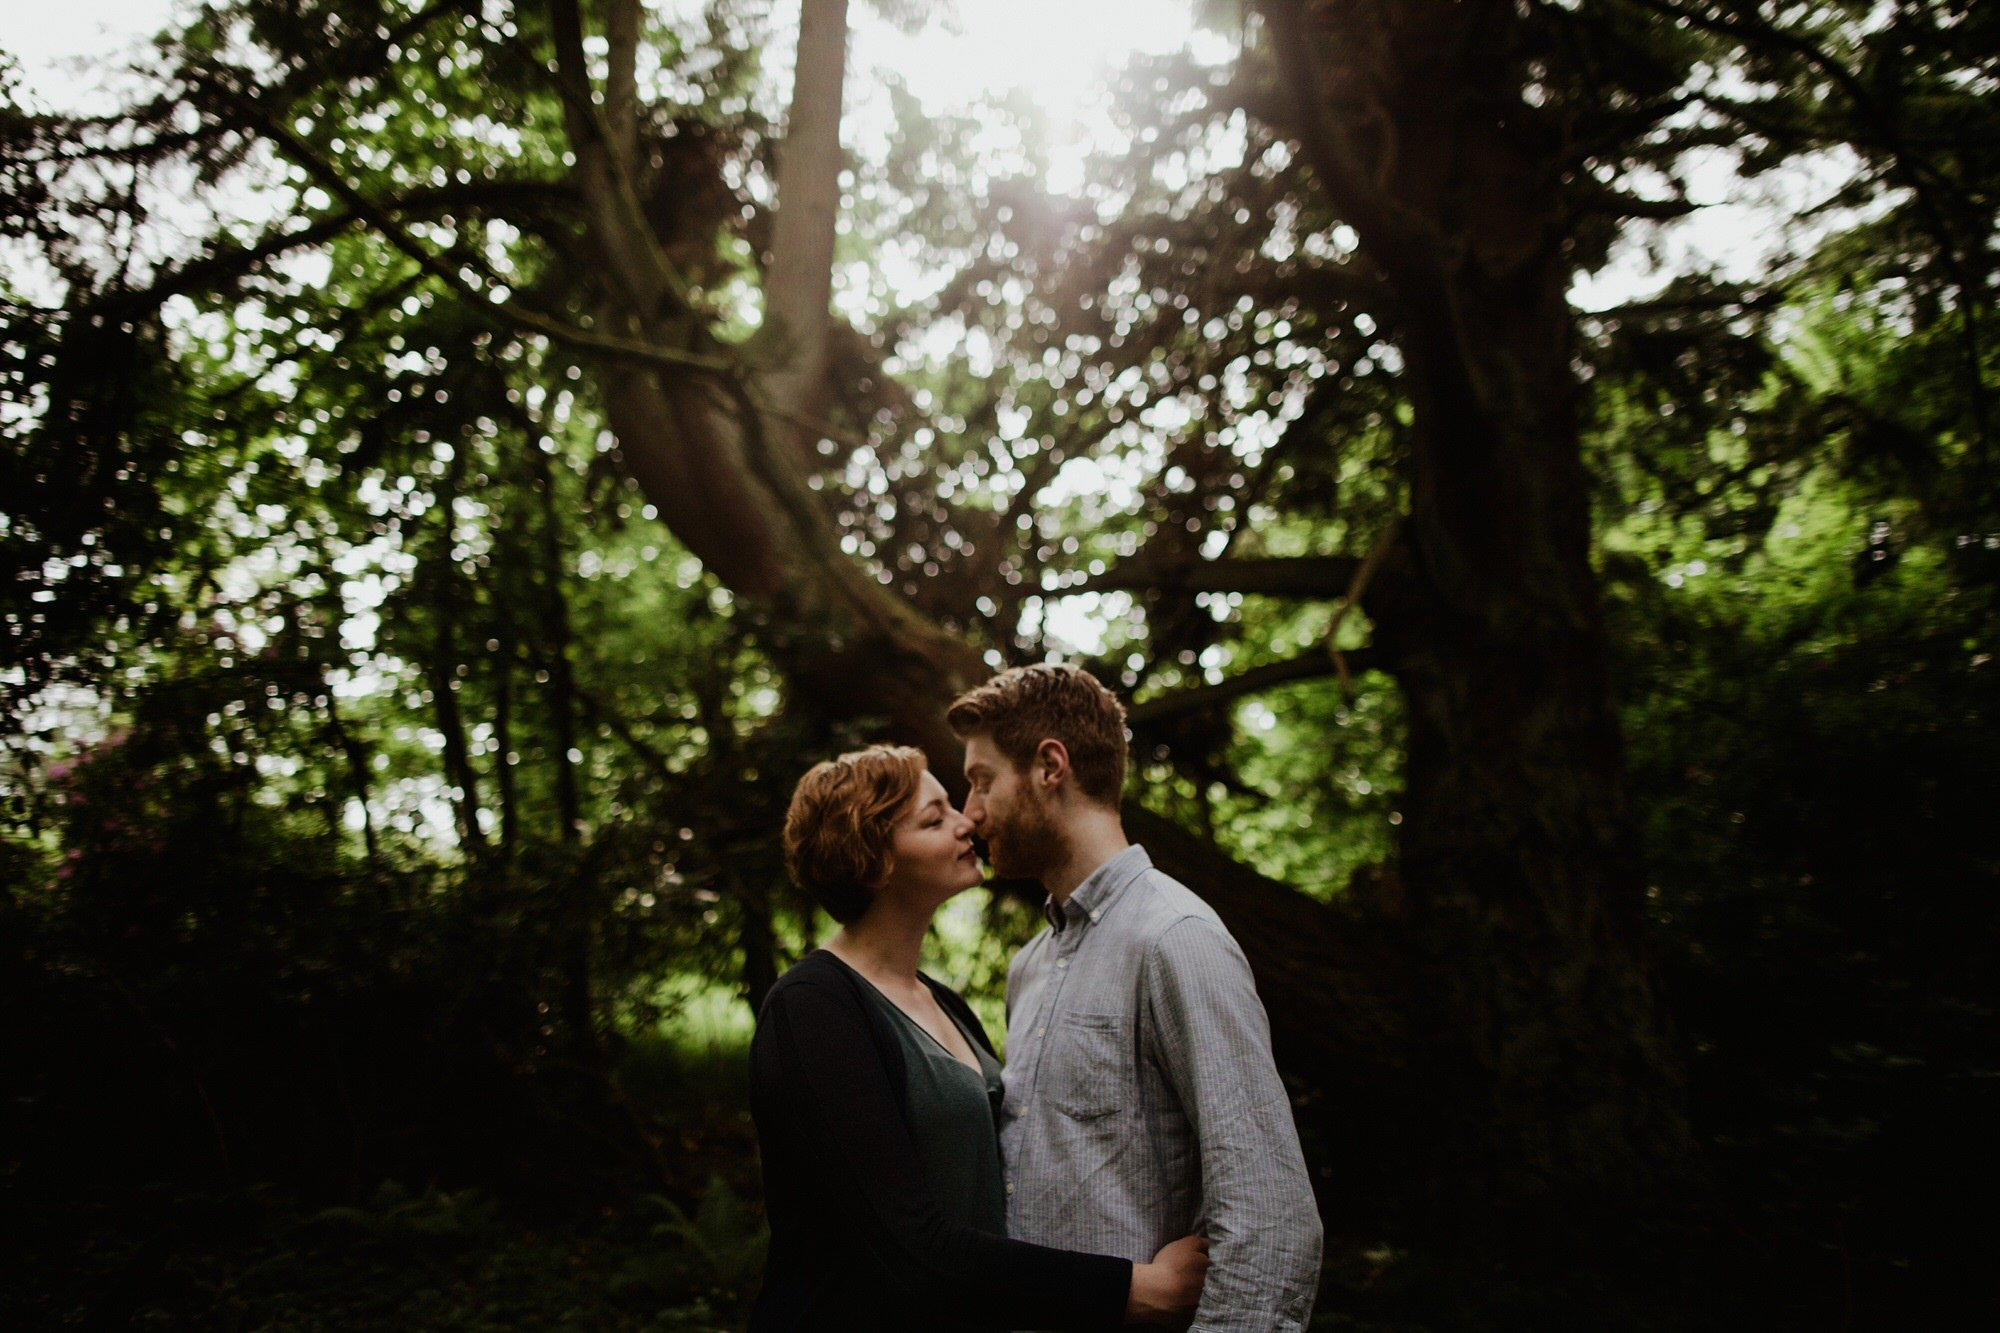 engagement shoot in woodland sun shinging through the trees and couple facing eachother with heads together